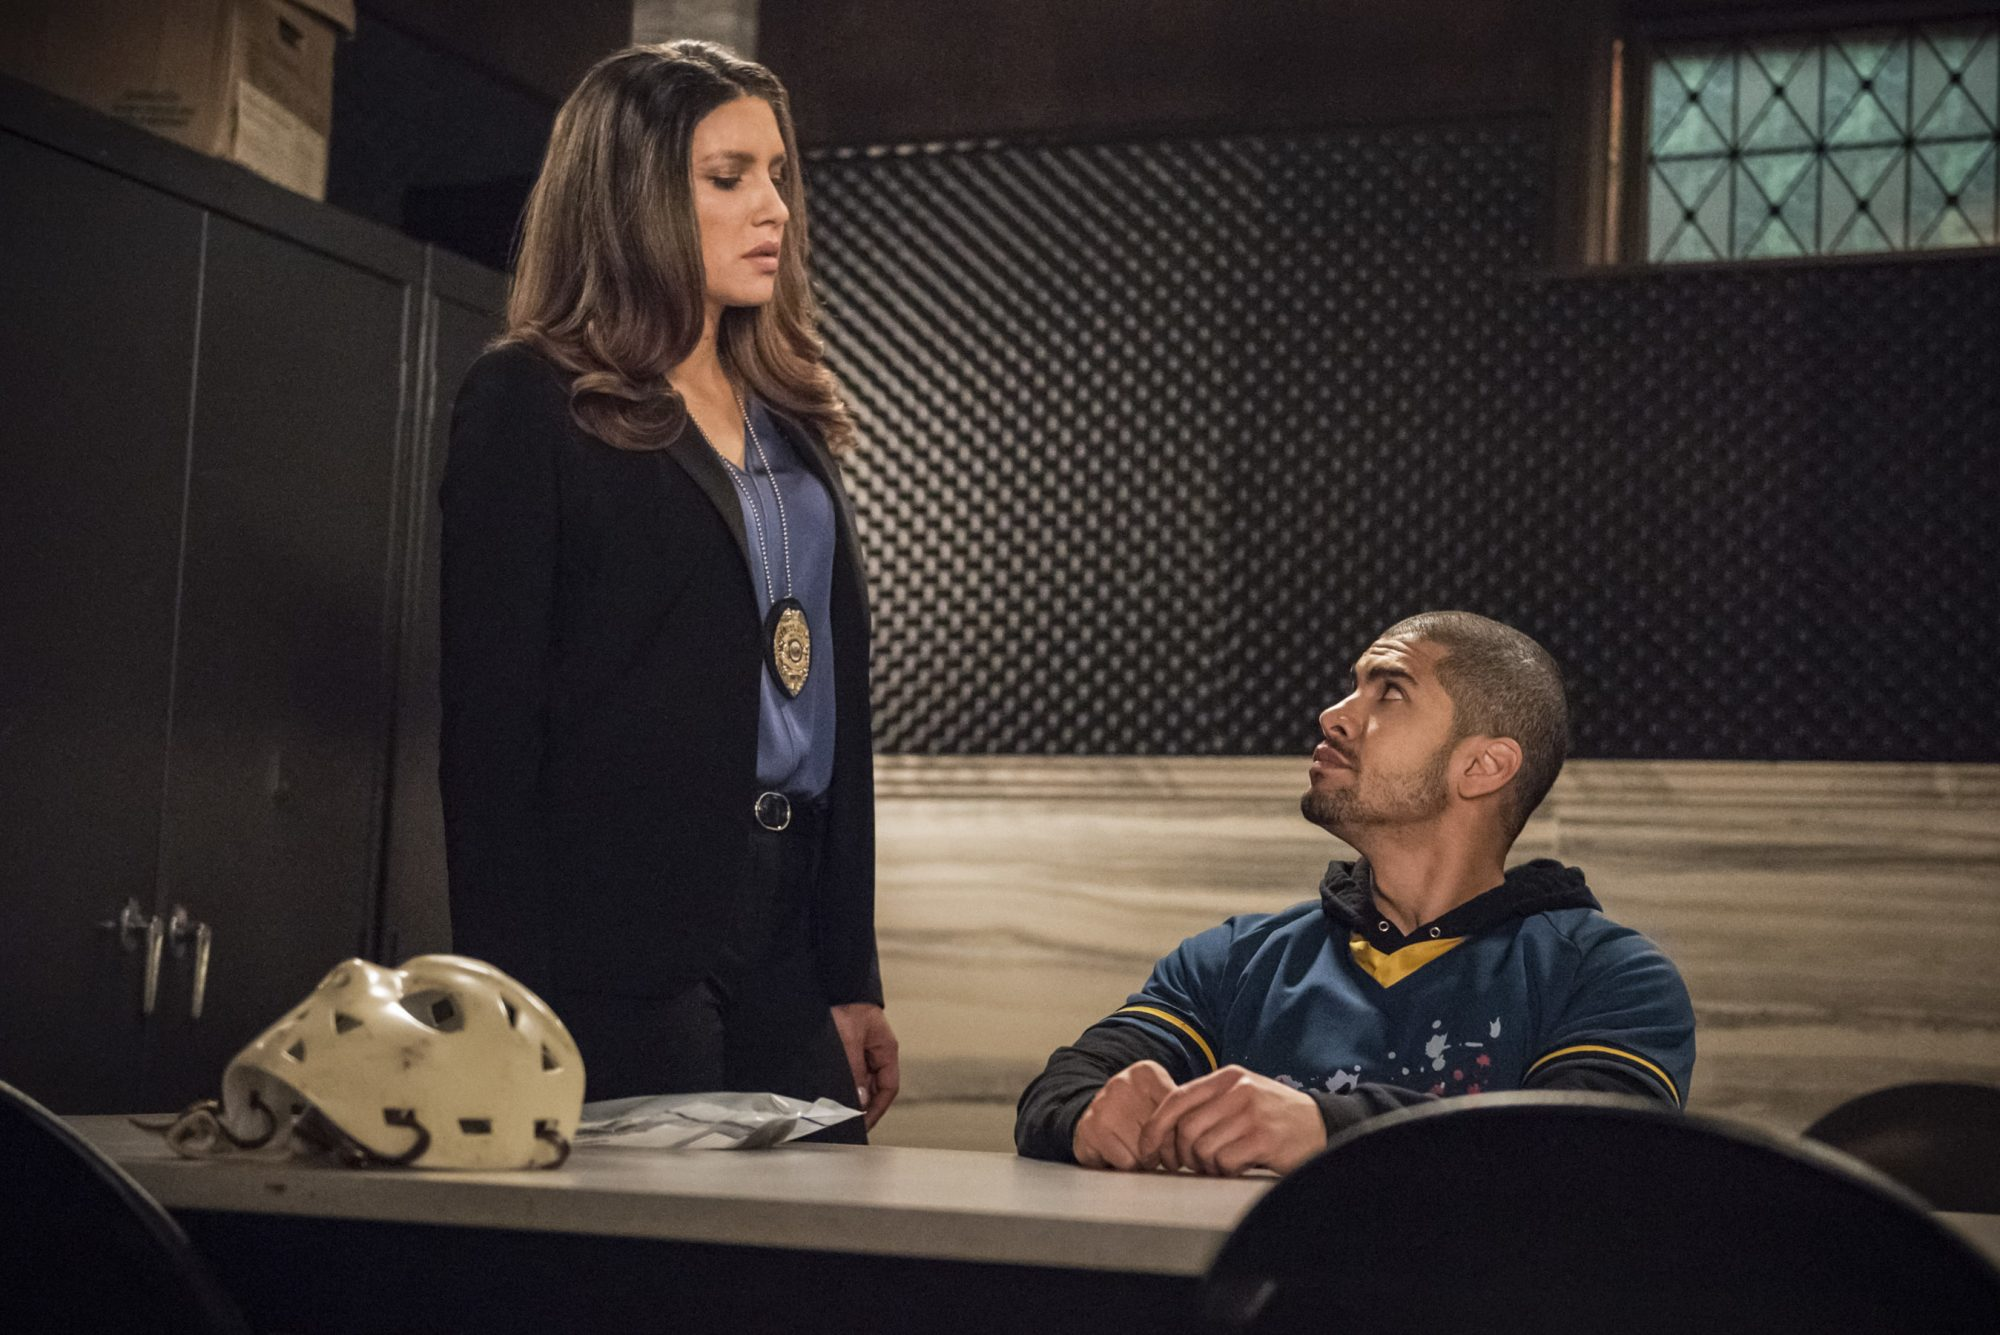 """Arrow -- """"Confessions"""" -- Image Number: AR720a_0170b.jpg -- Pictured (L-R): Juliana Harkavy as Dinah Drake/Black Canary and Rick Gonzalez as Rene Ramirez/Wild Dog -- Photo: Dean Buscher/The CW -- © 2019 The CW Network, LLC. All Rights Reserved."""